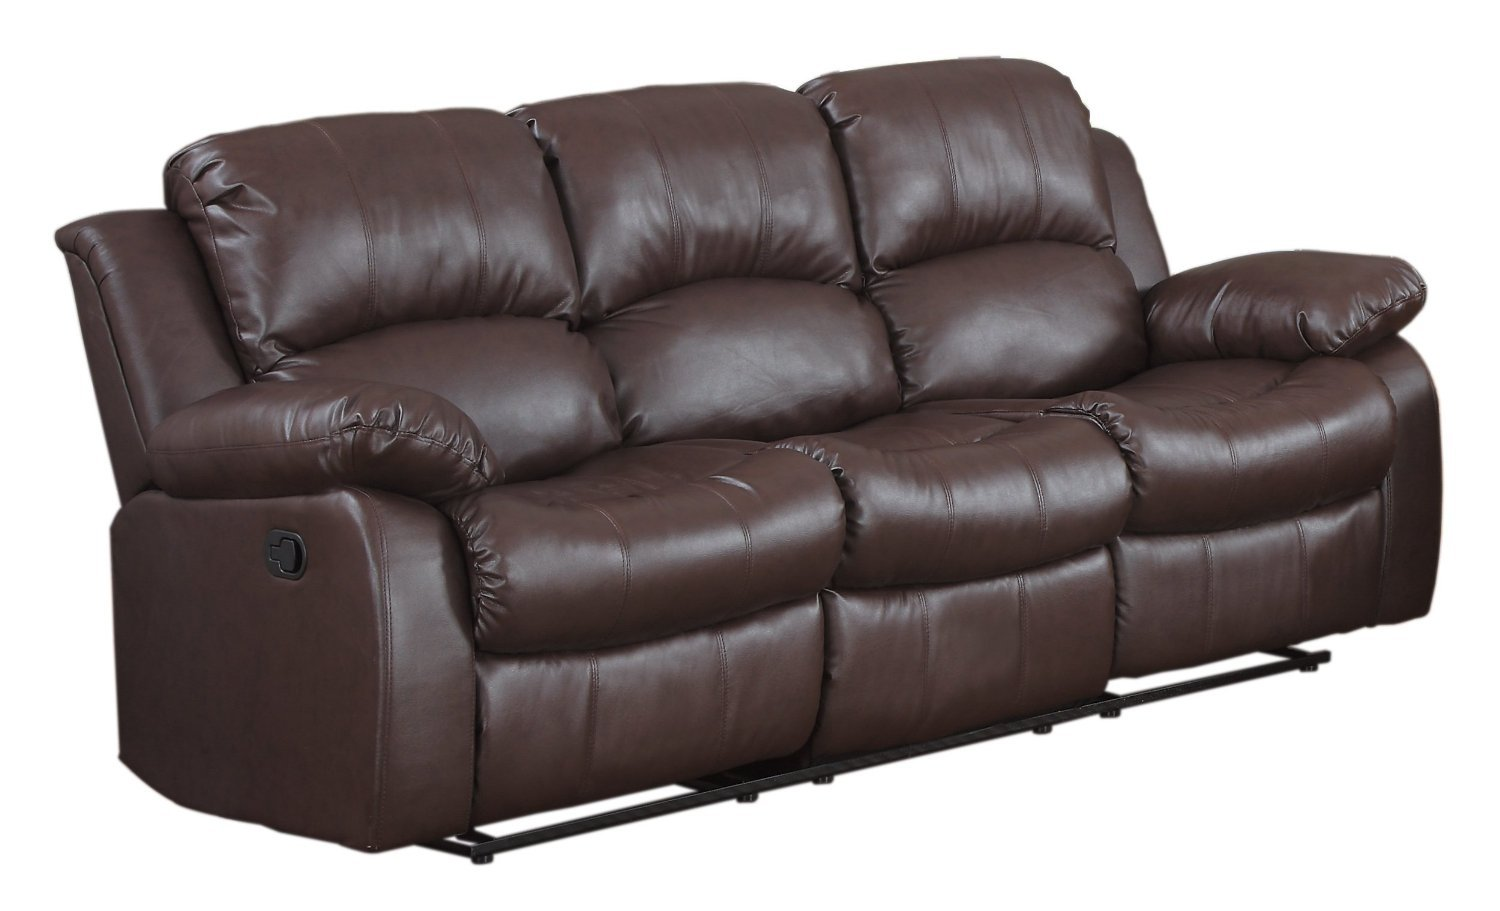 Best Recliner Reviews and Buying Guide 1